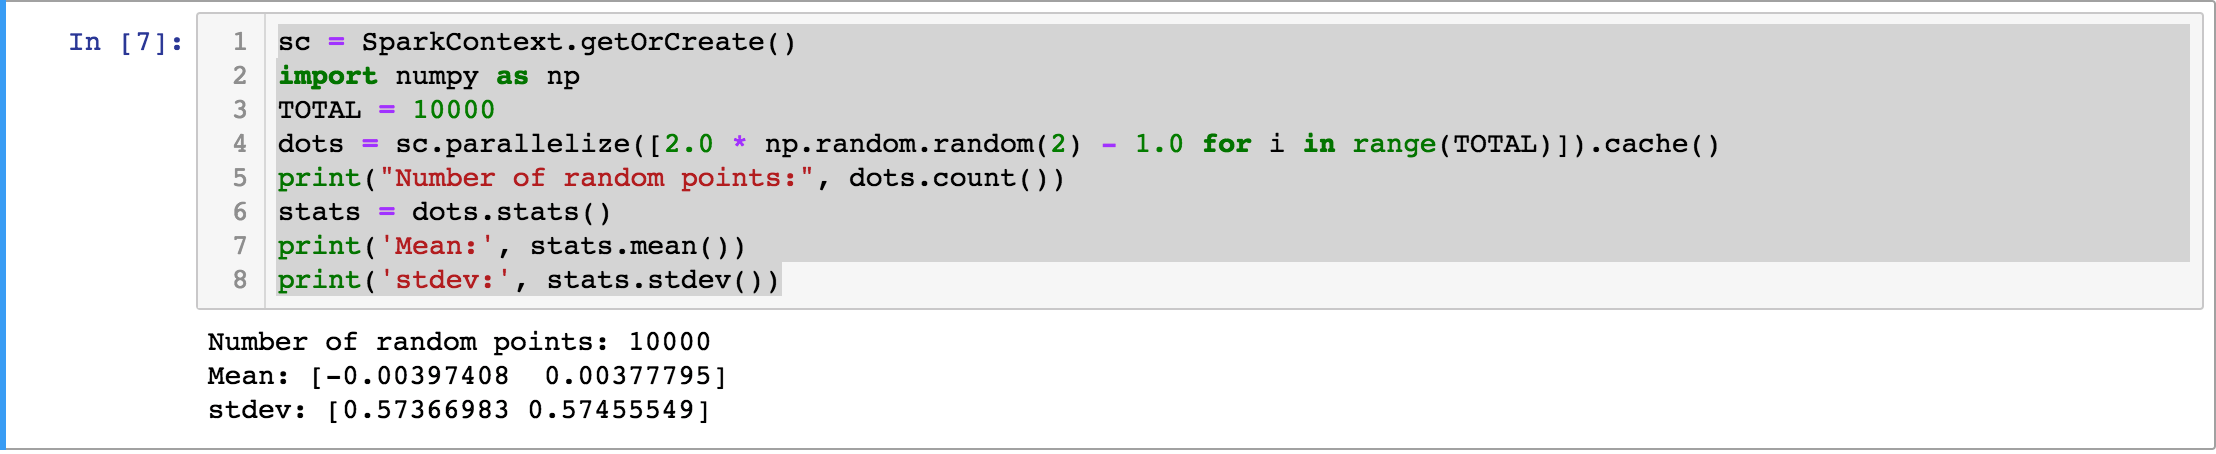 How to run PySpark 2 4 0 in Jupyter Notebook on Mac – TechnoFob